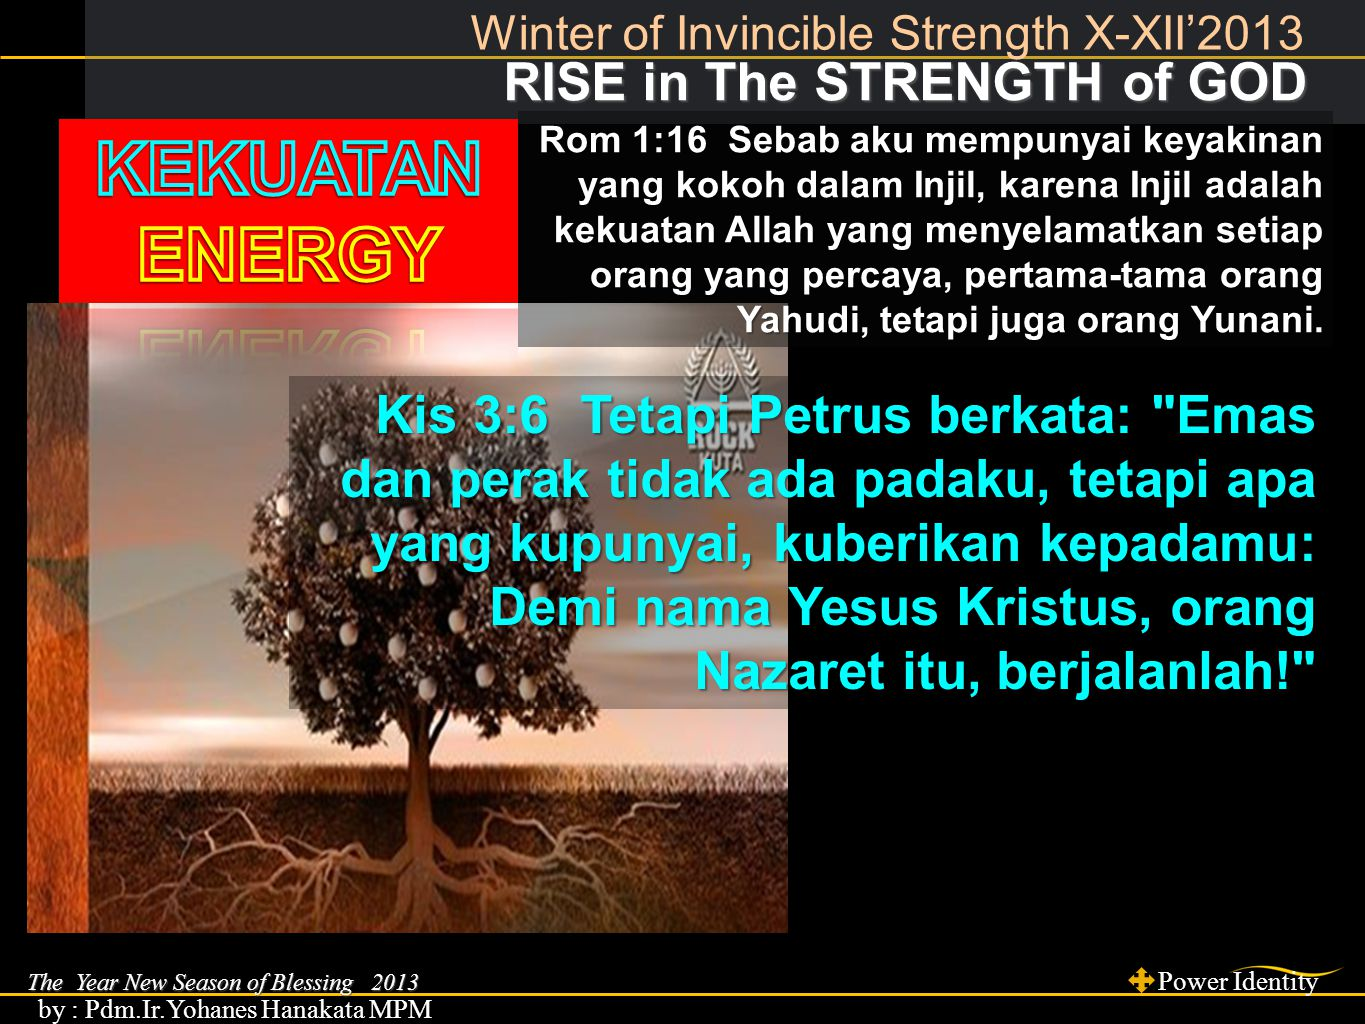 The Year New Season of Blessing 2013 Power Identity by : Pdm.Ir.Yohanes Hanakata MPM RISE in The STRENGTH of GOD RISE in The STRENGTH of GOD Winter of